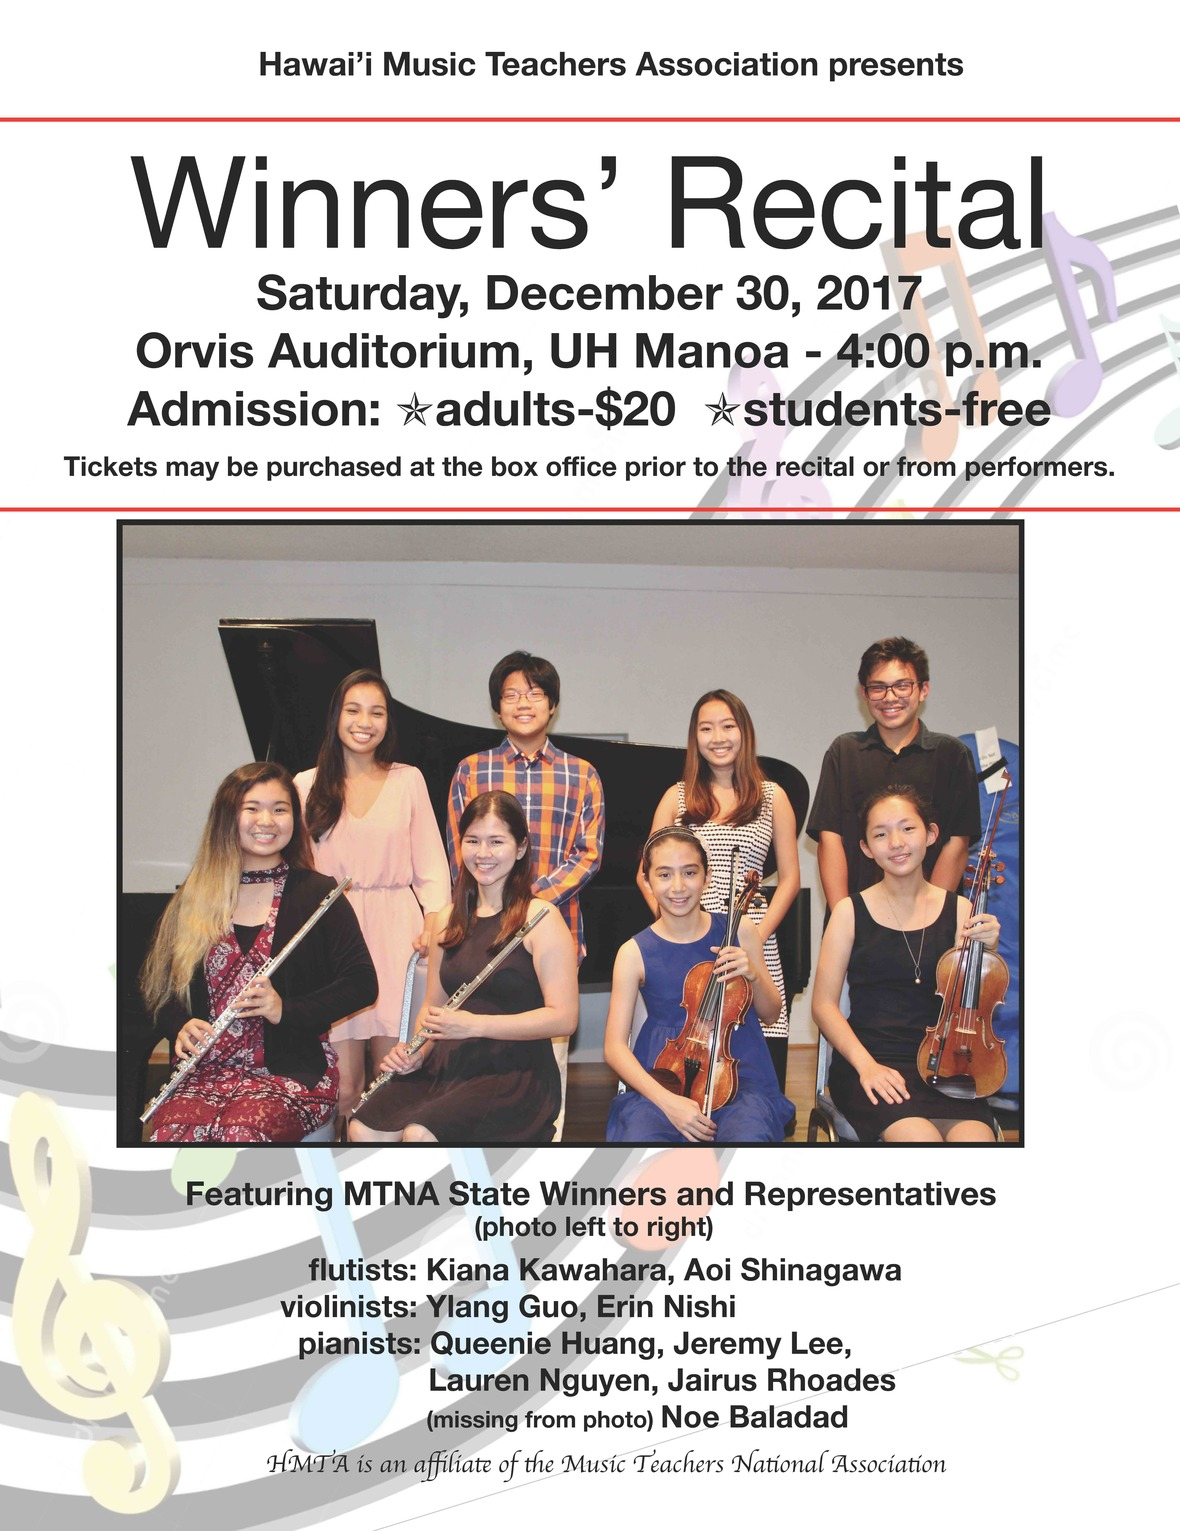 2017 Winners Recital Flyer